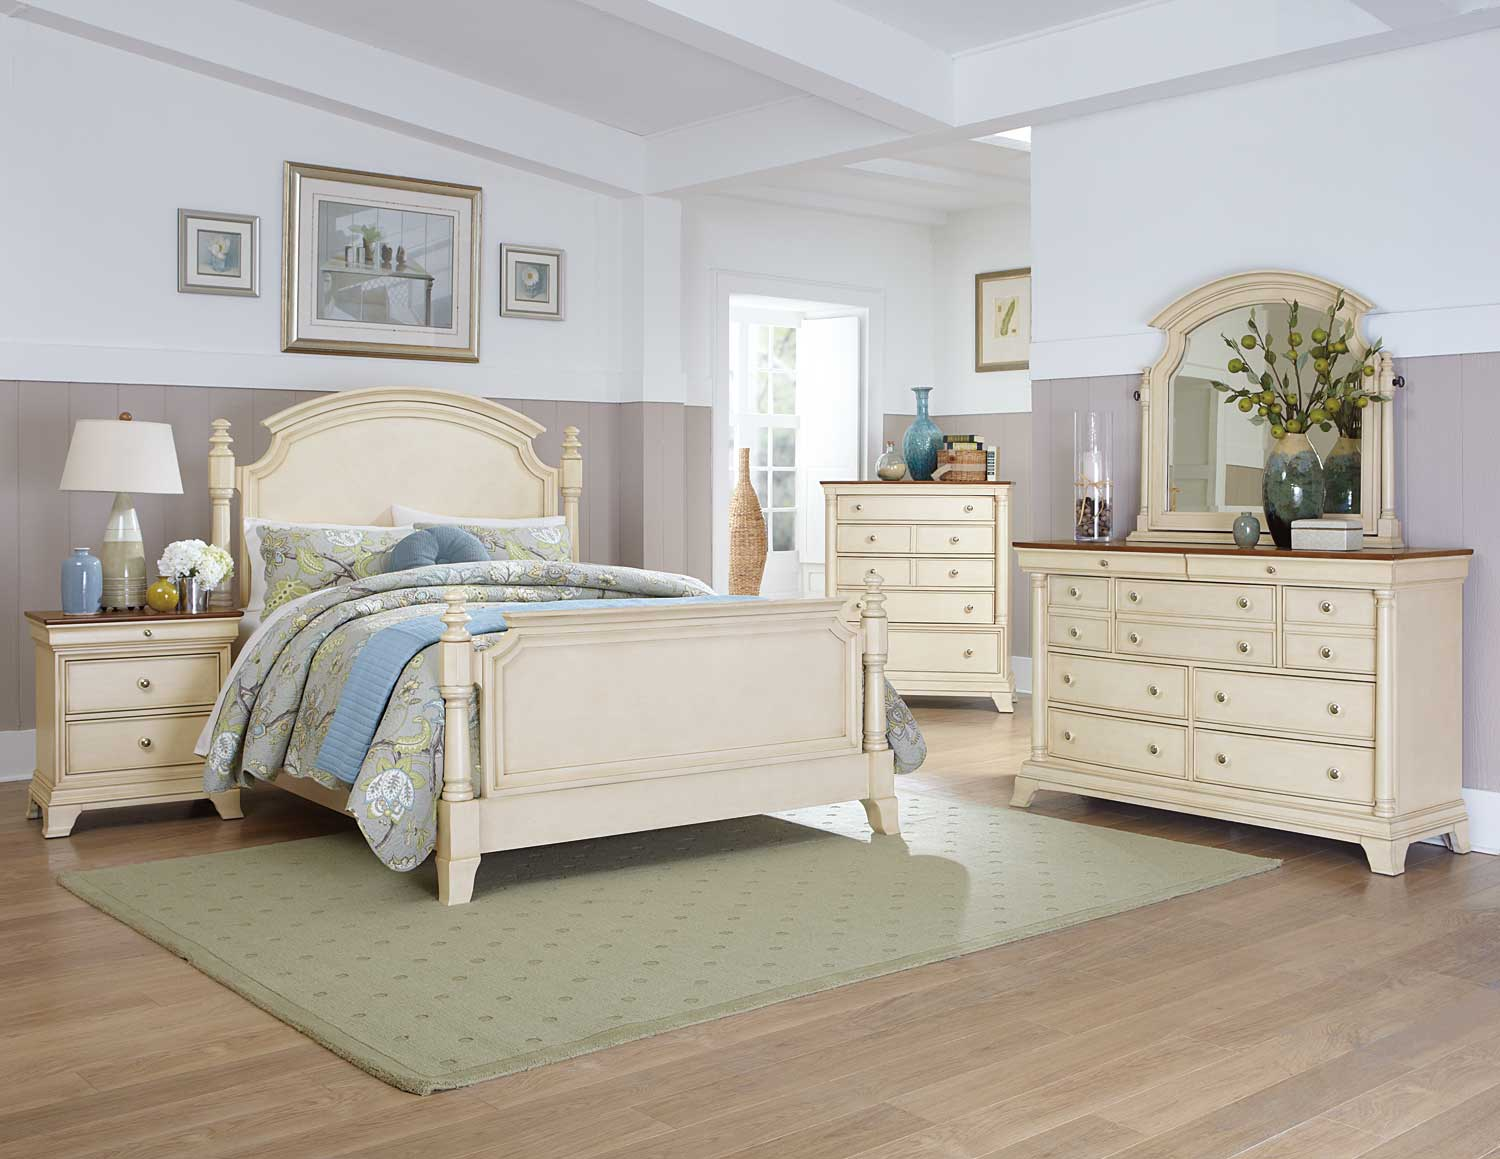 Homelegance Inglewood Ii Bedroom Set White B1402w Bed Set At